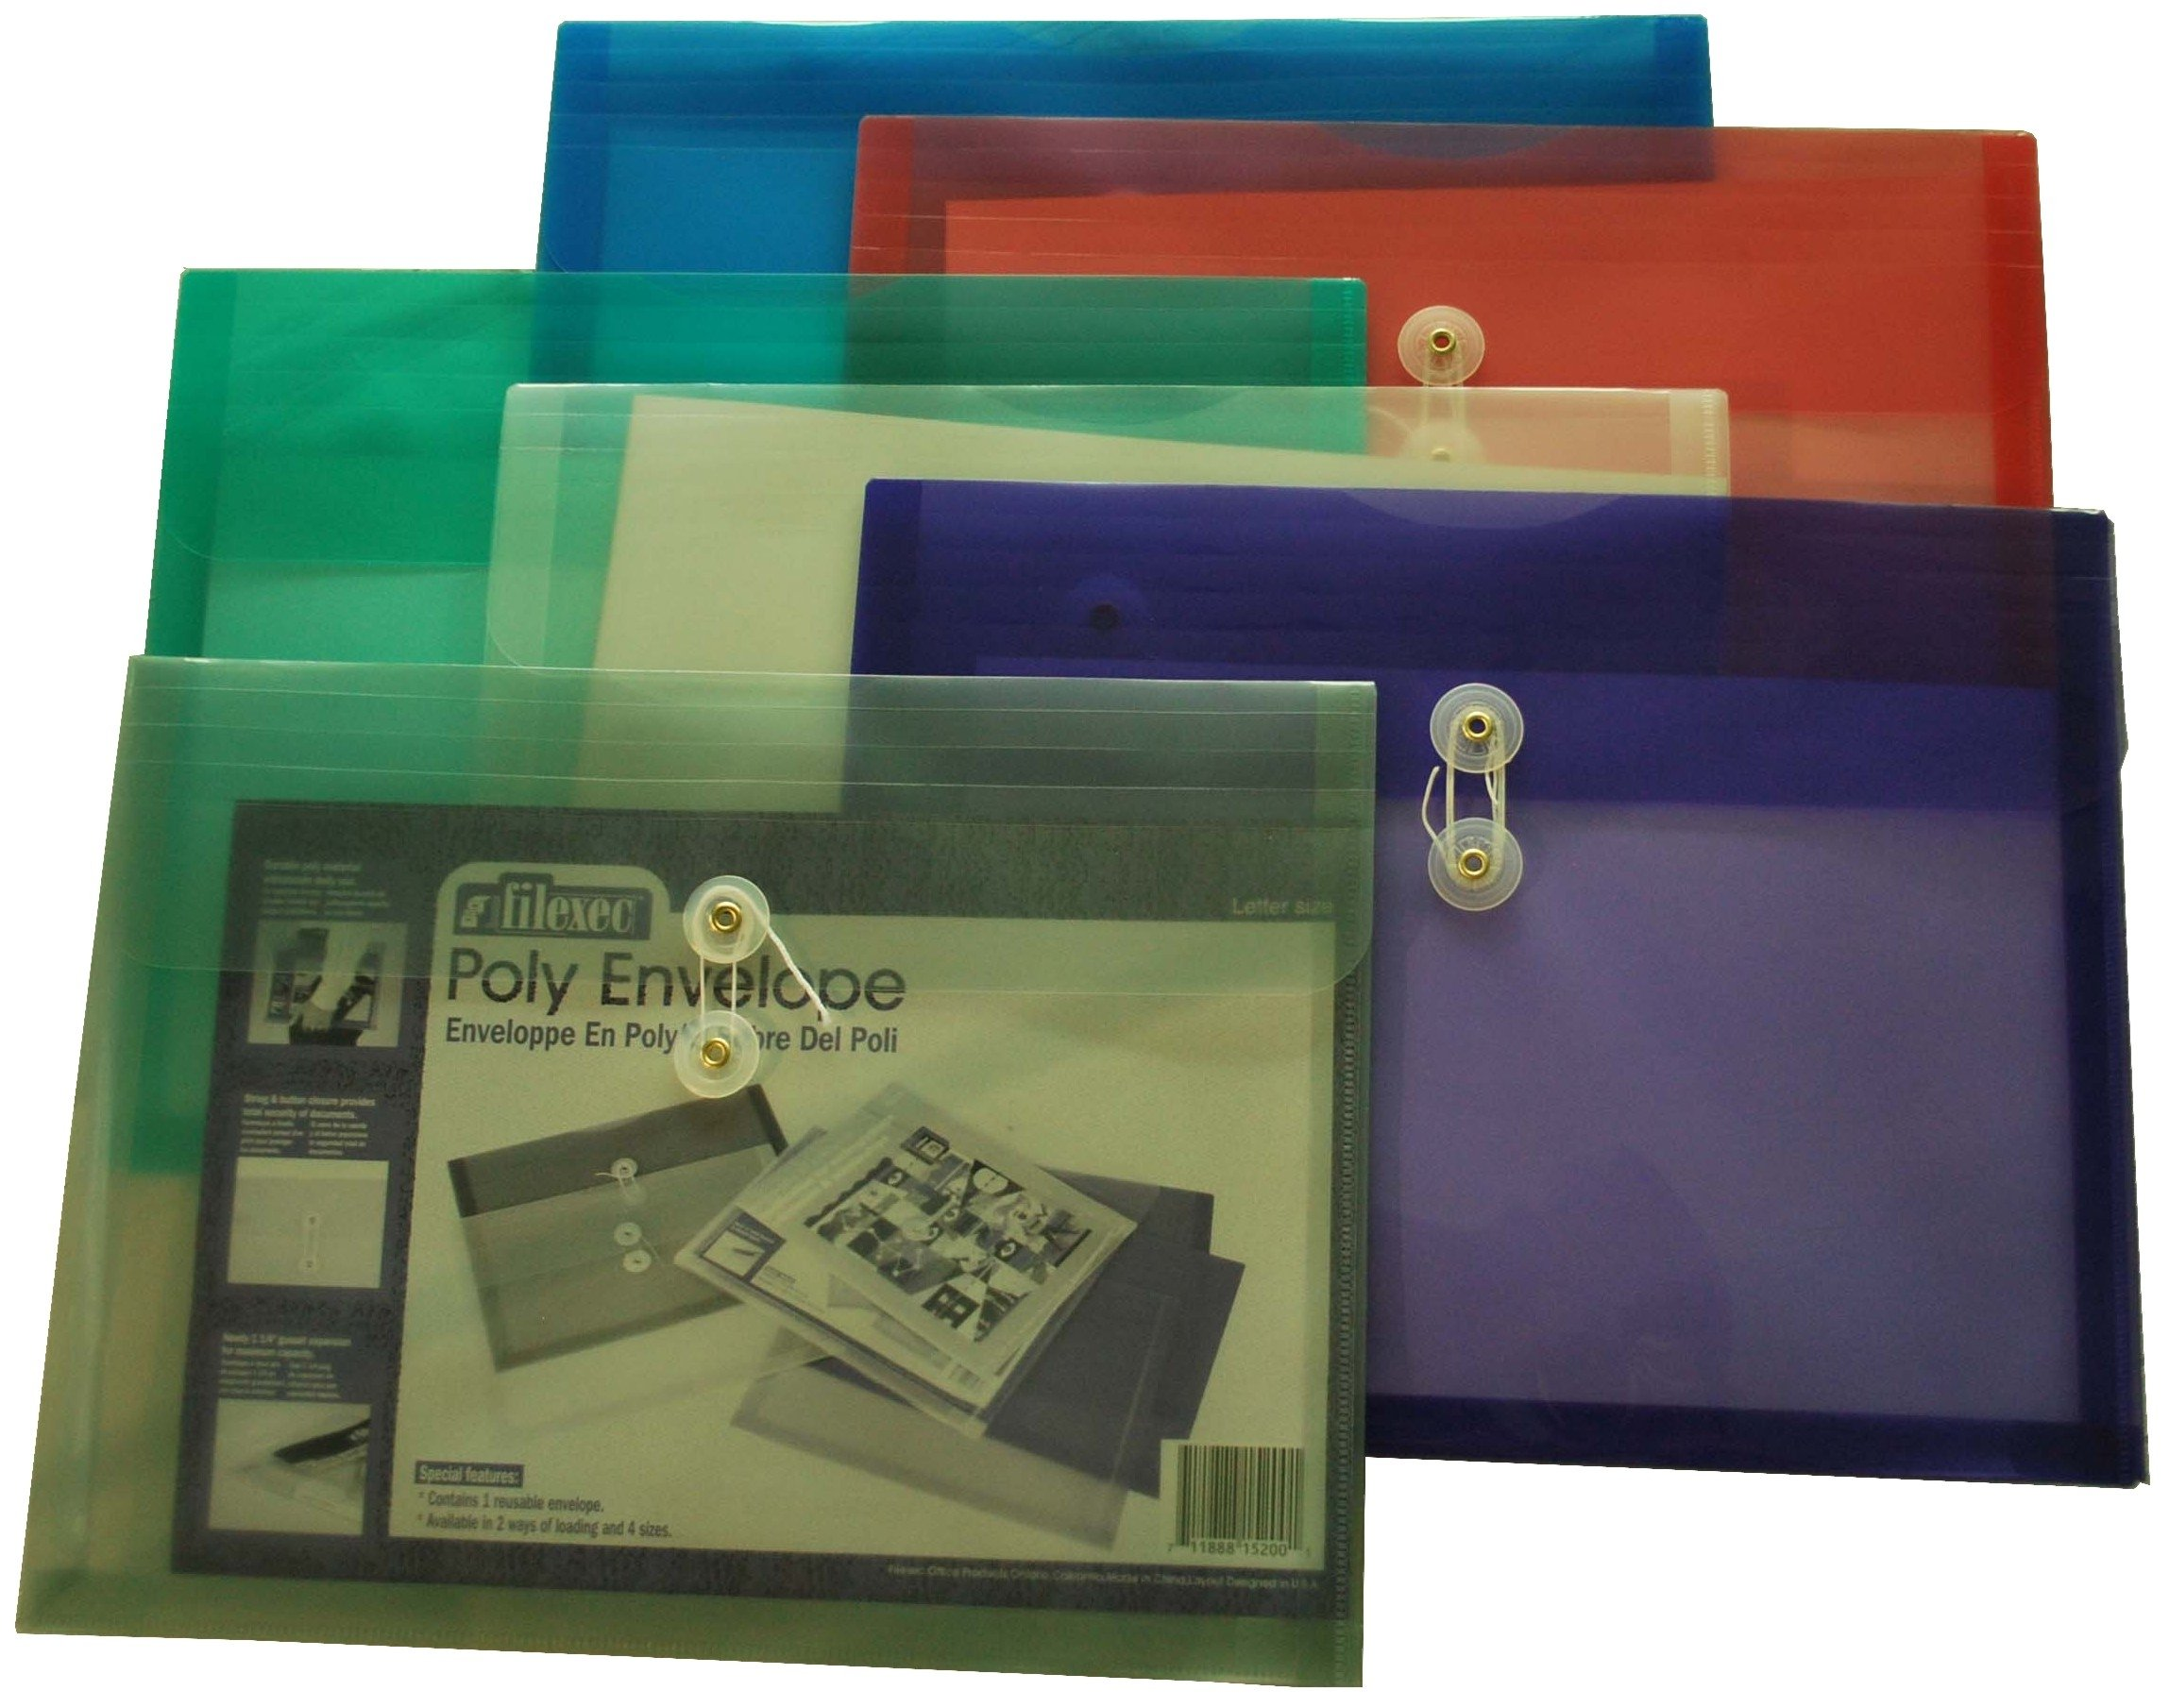 Filexec 50021-1520 1520, Poly Envelope, Side Loading, Letter Size, Set of 12 in 6 Assorted Colors, 2 Each Smoke, Blue, Red, Clear, Purple, Green